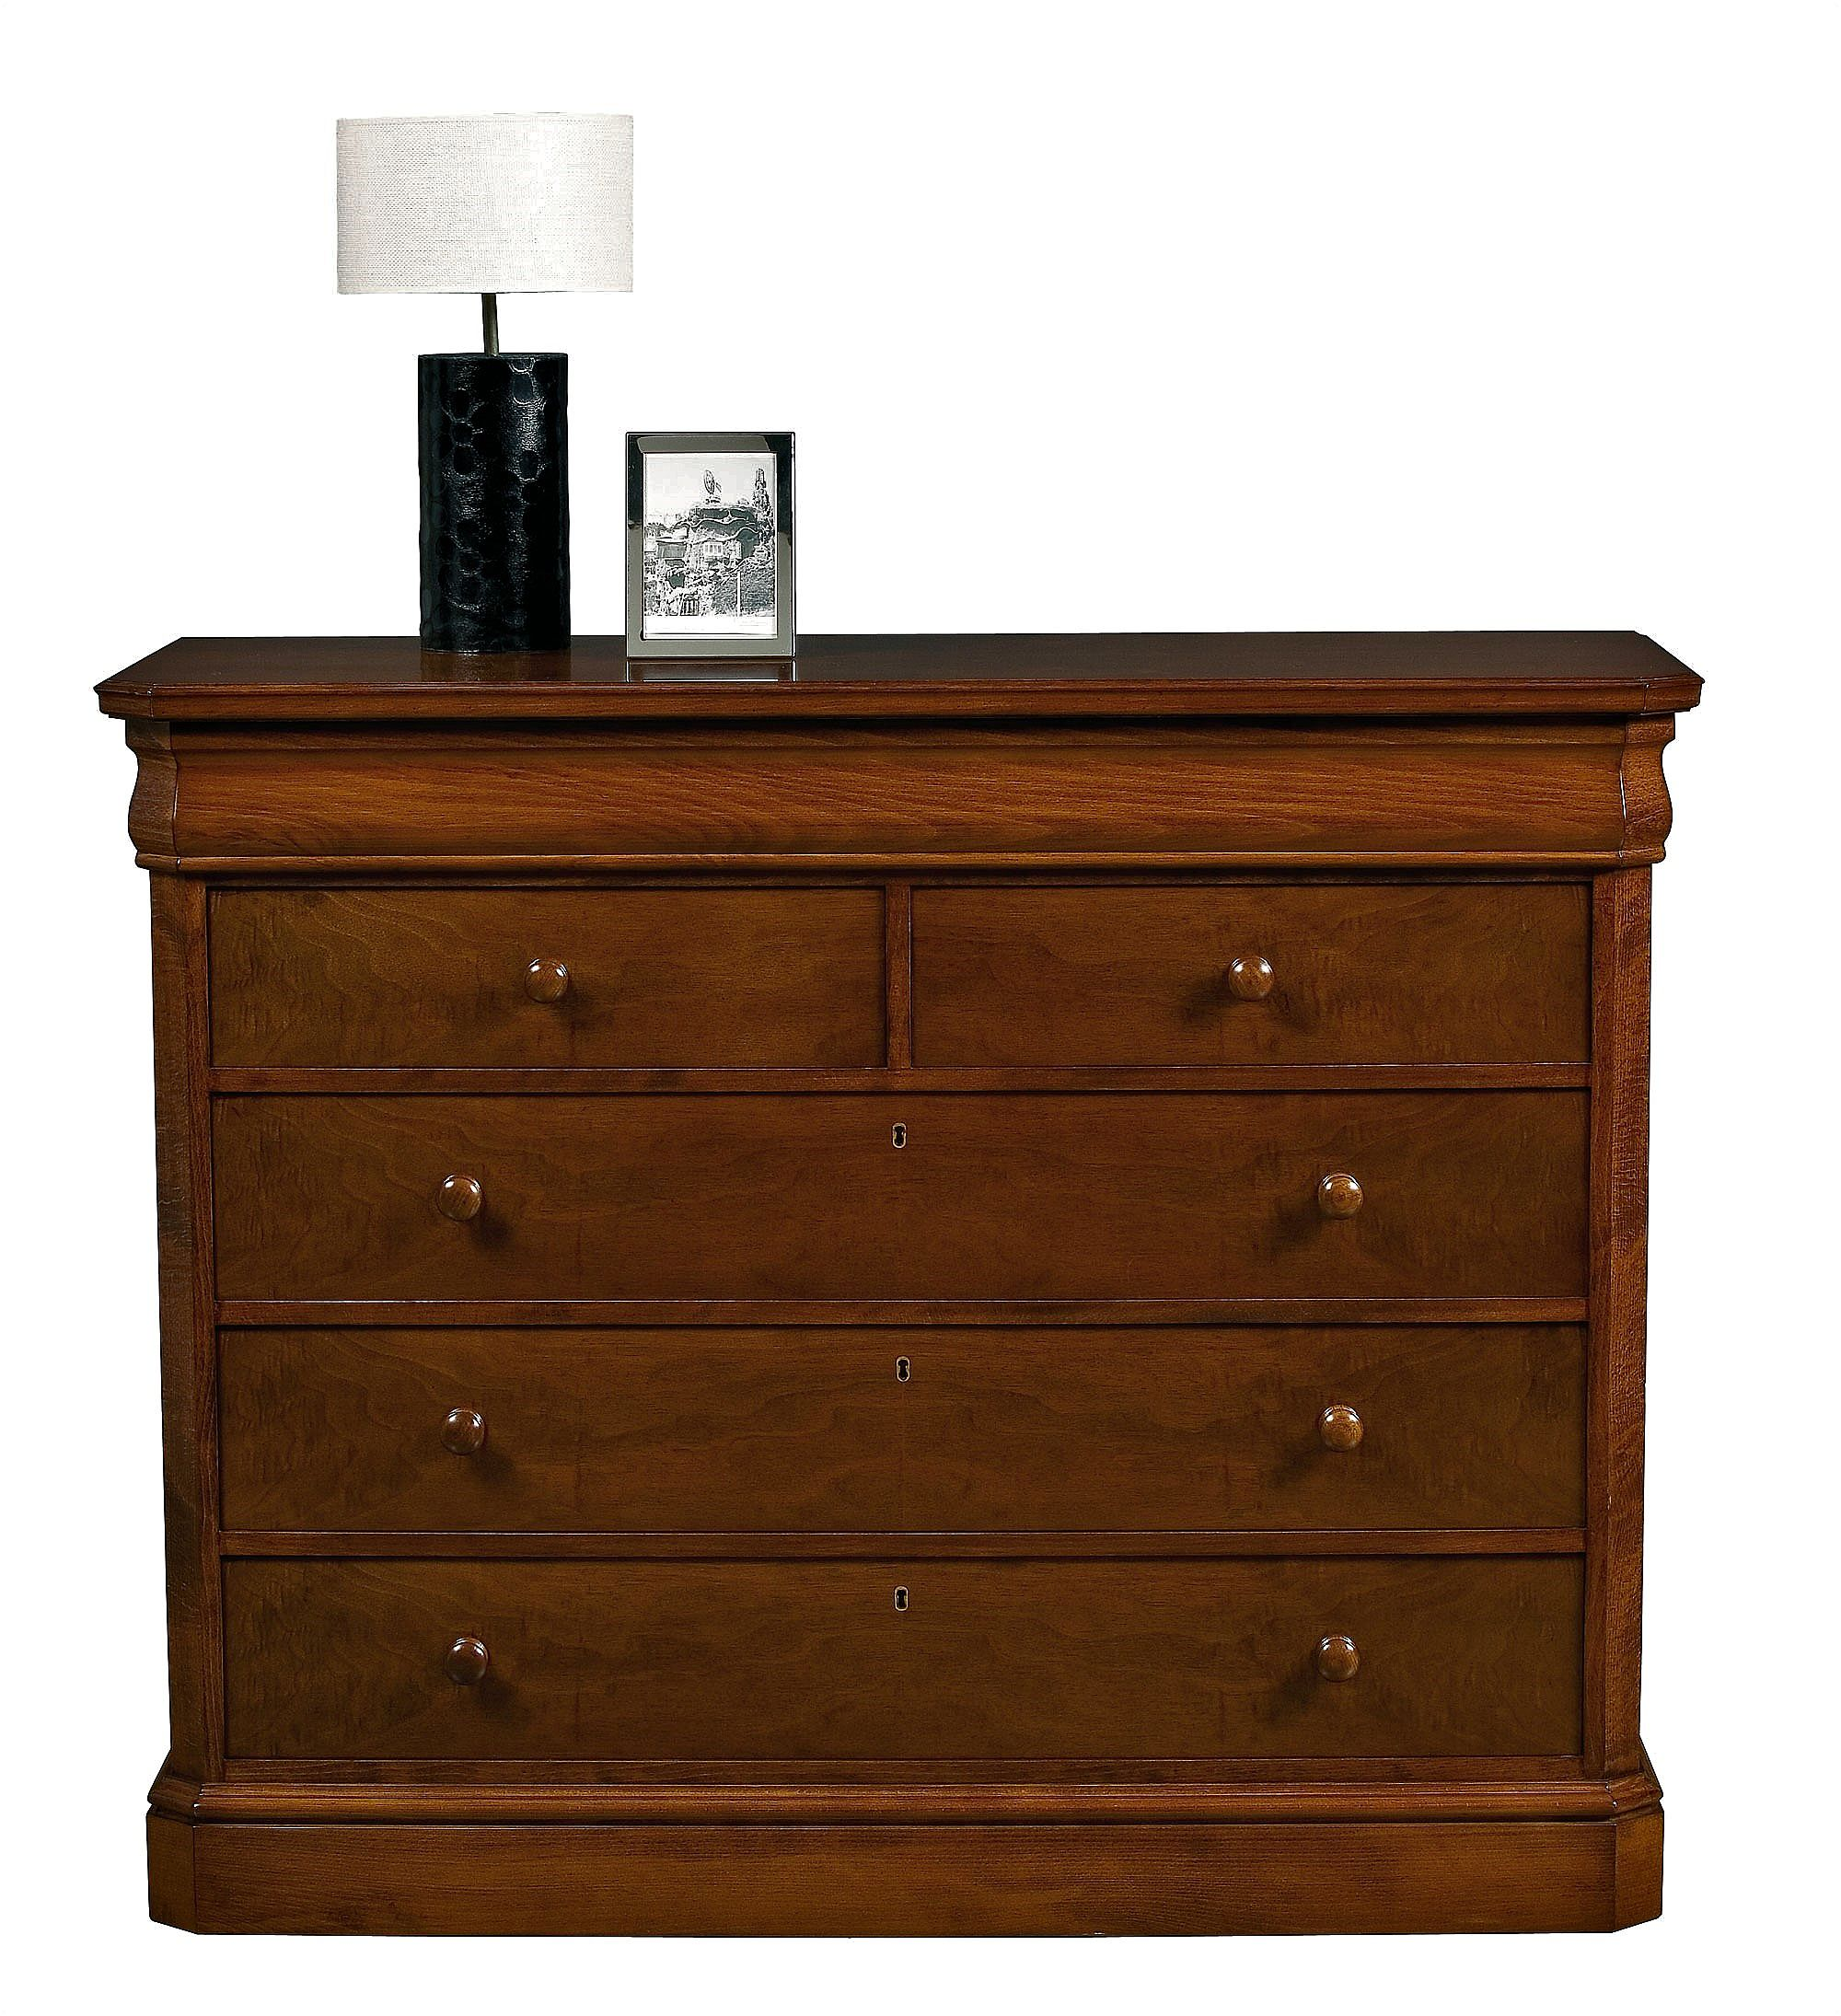 Dining Room Chest Of Drawers: Classic Bedroom Chest Of Drawers